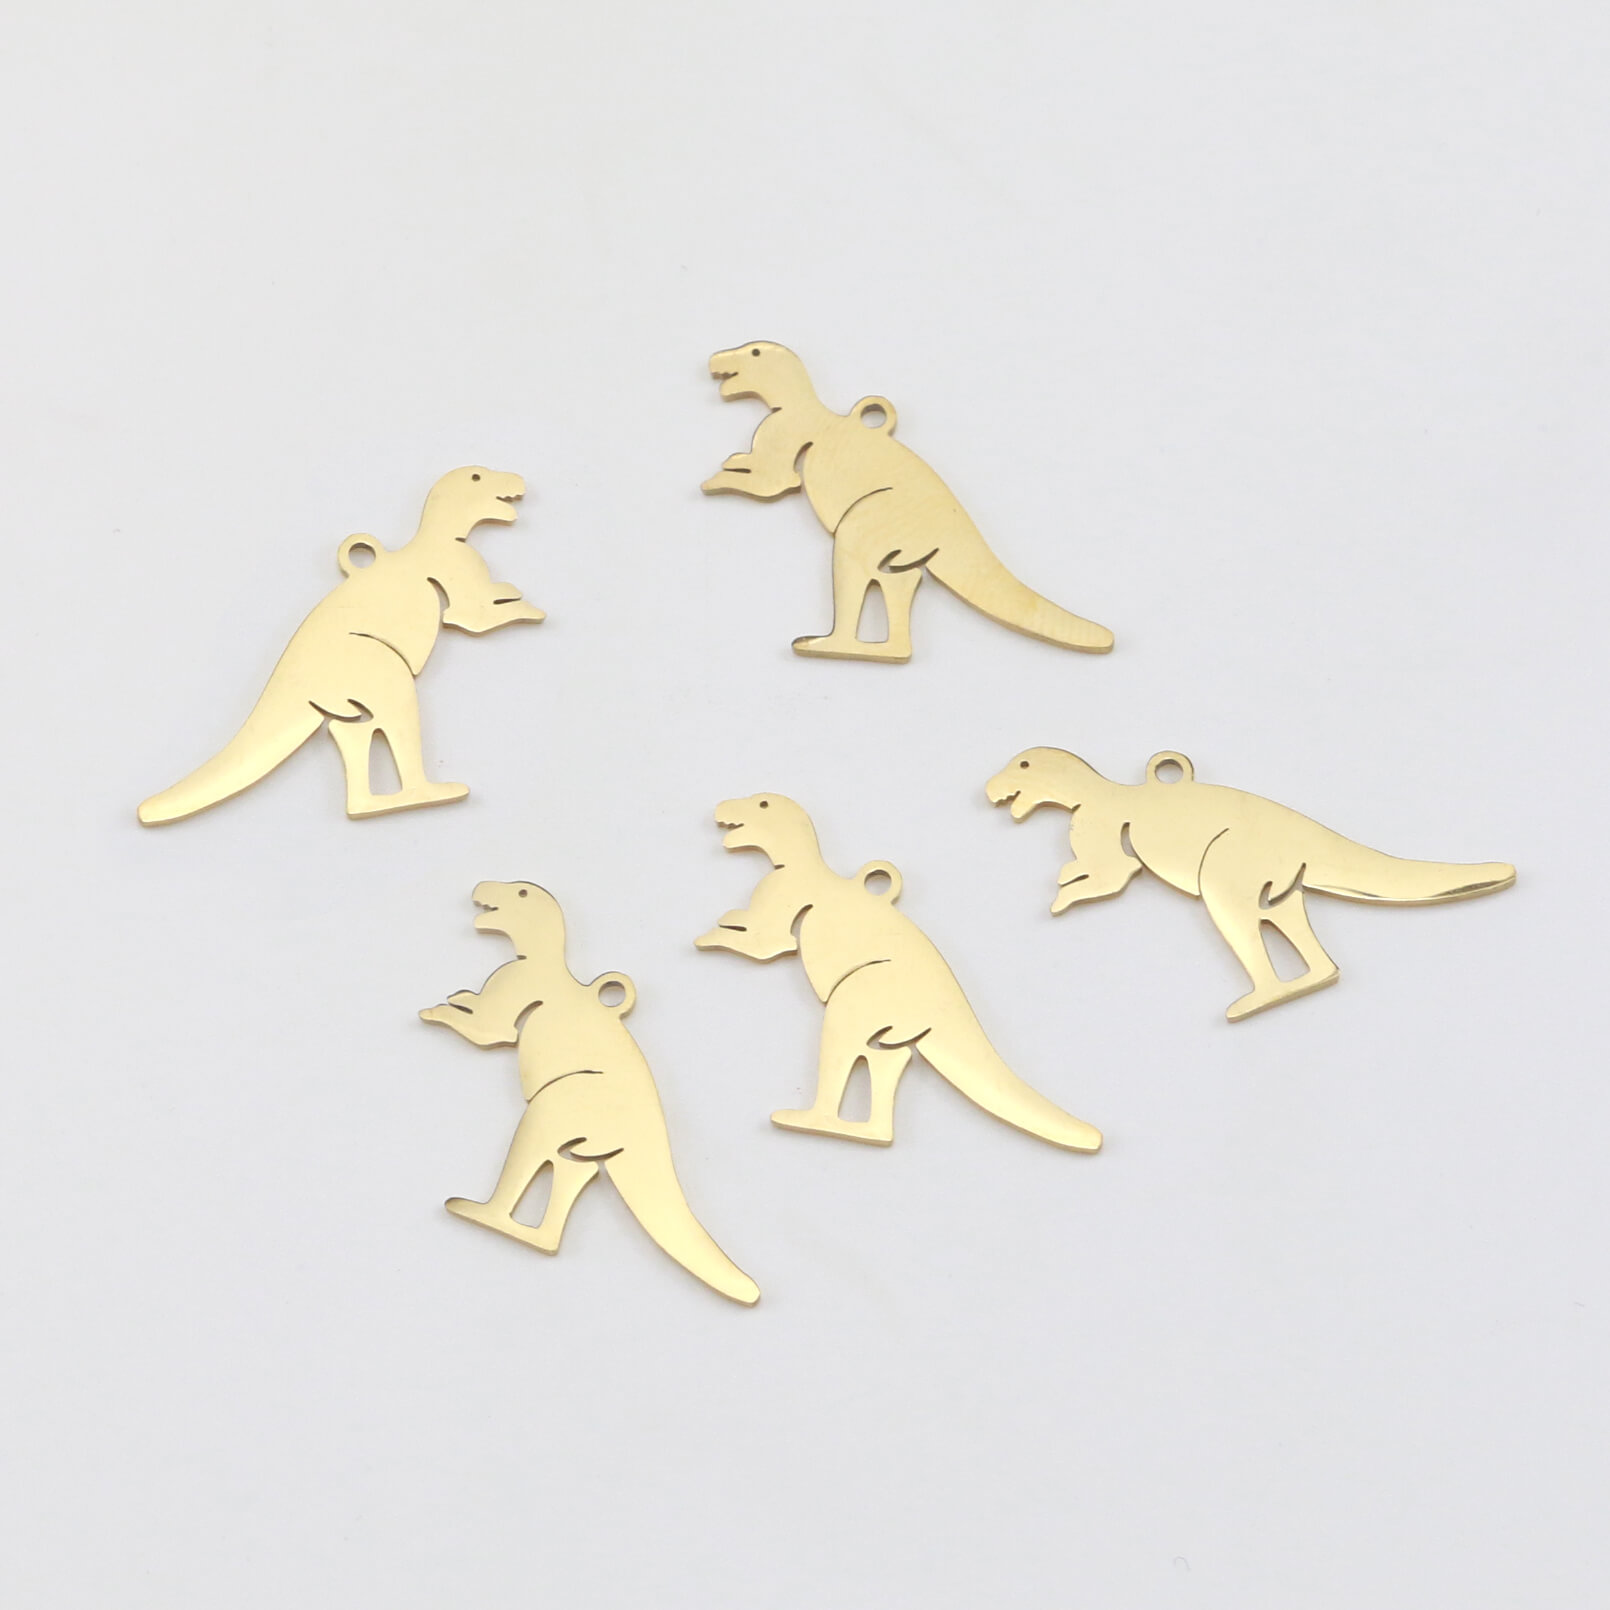 There are dinosaur pendants.